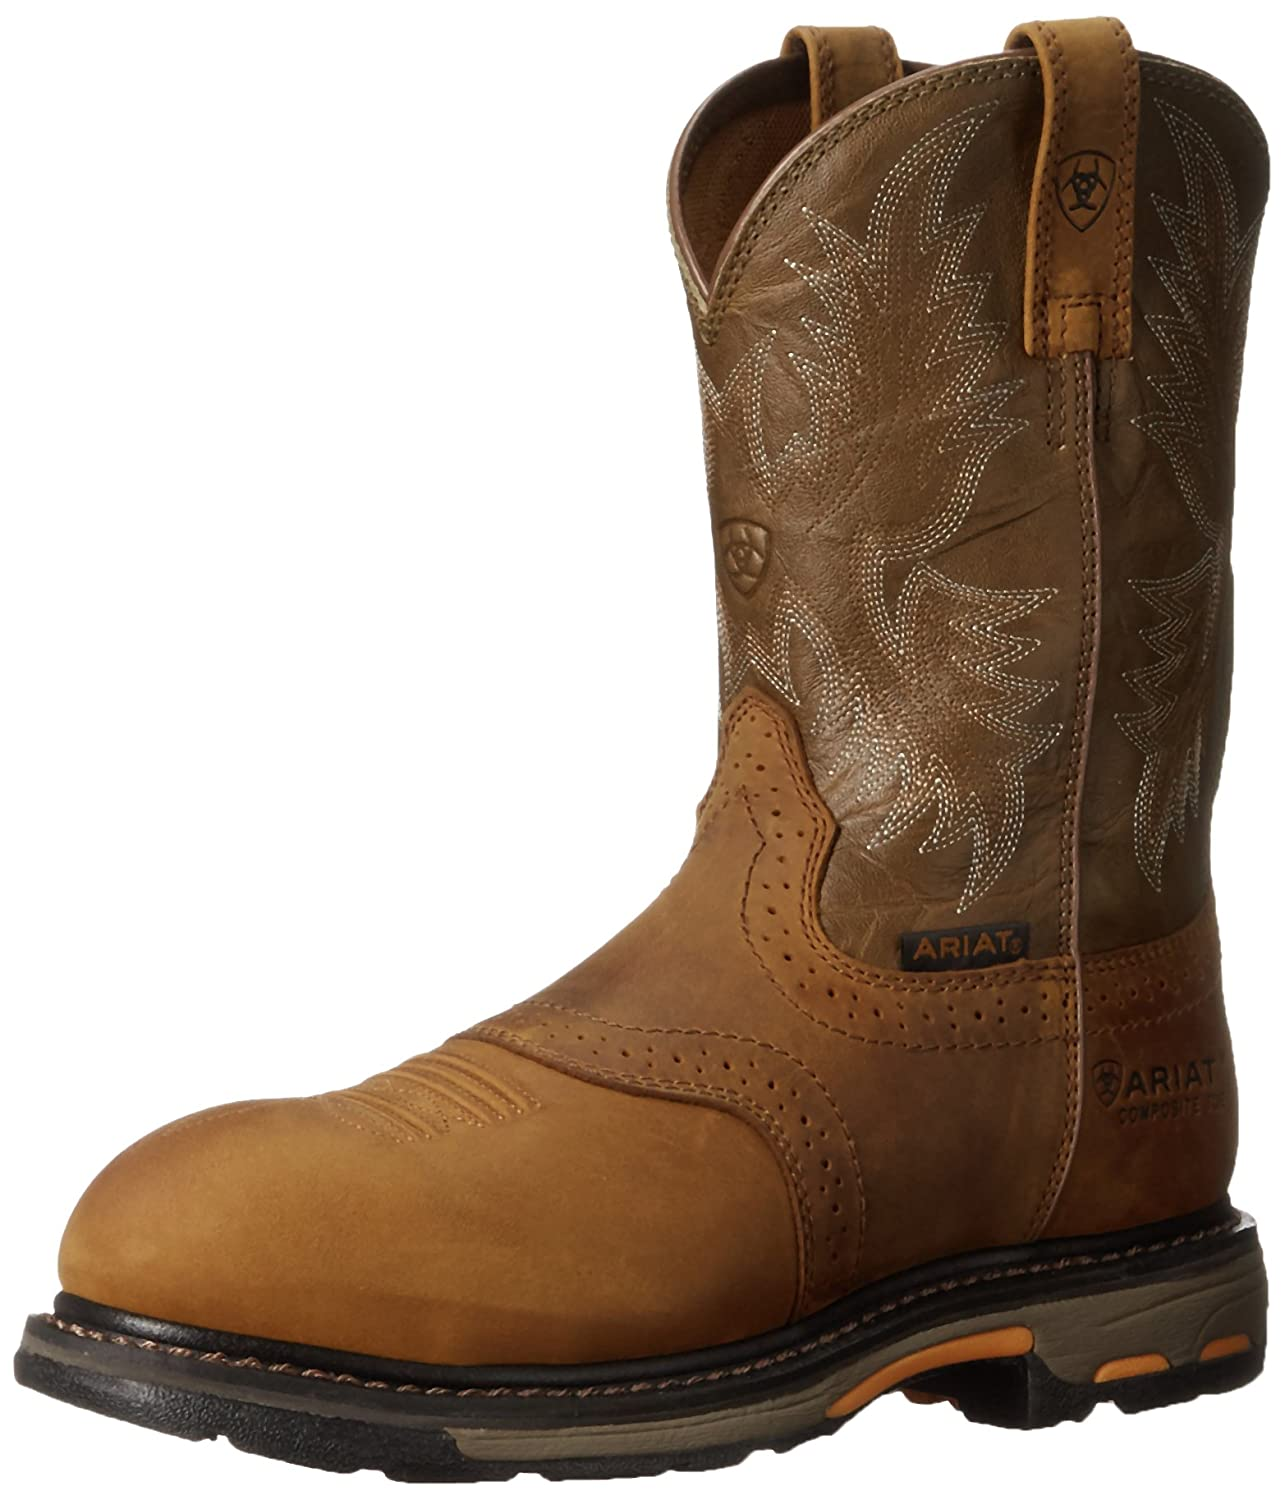 Ariat メンズ Workhog B00274TQAM 9 Wide (EE) US|Aged Bark/Army Green Aged Bark/Army Green 9 Wide (EE) US